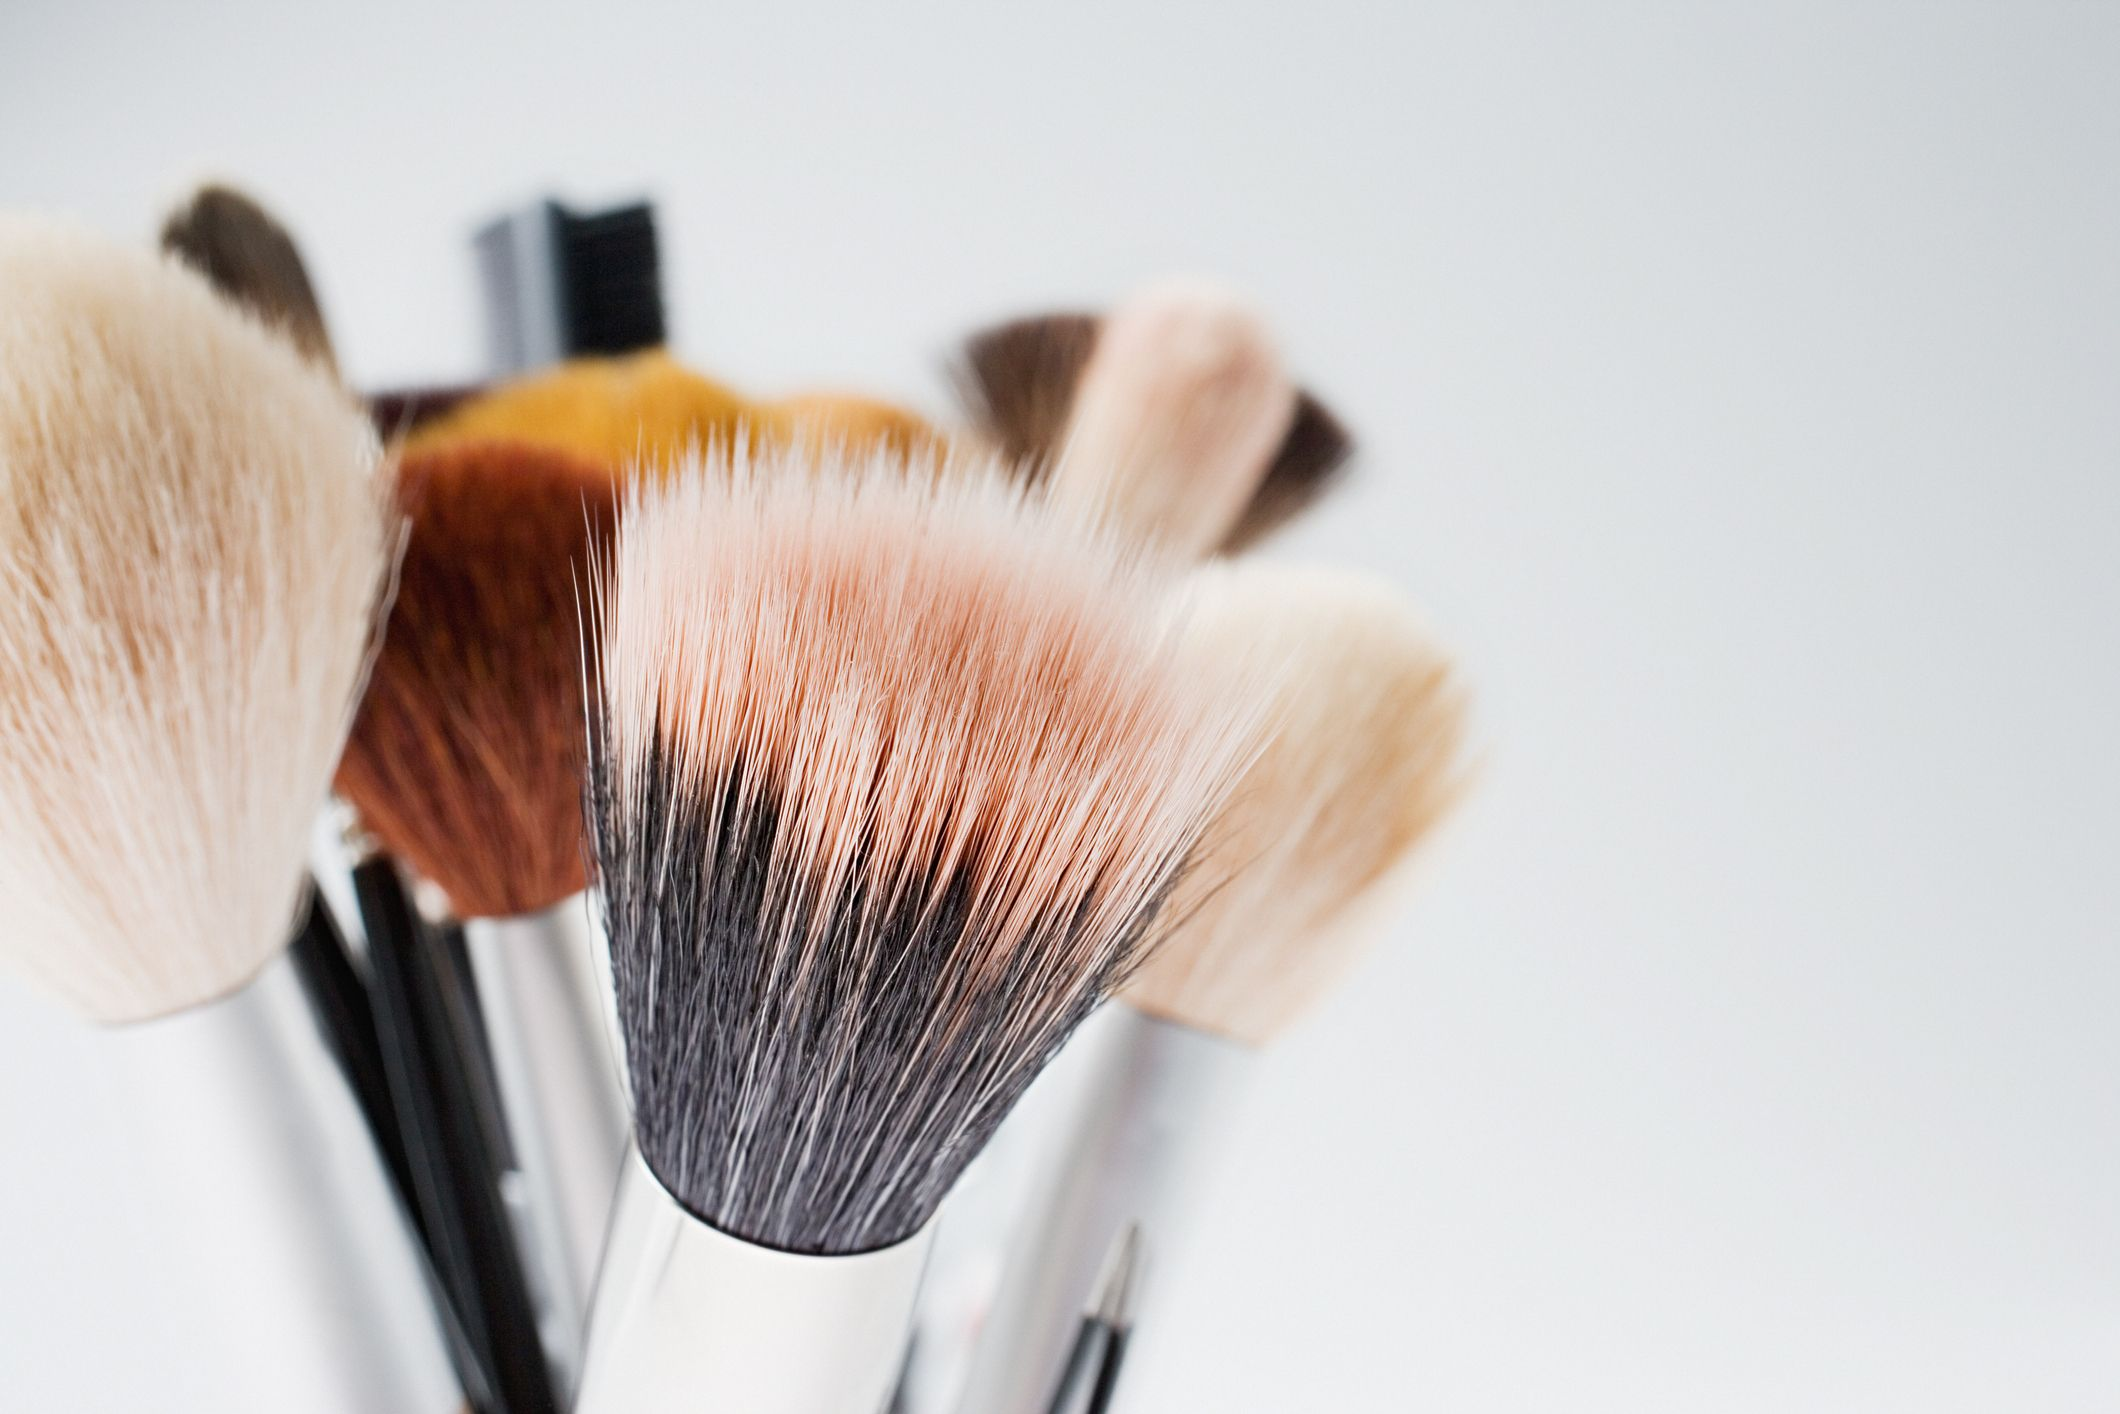 How to Clean Makeup Brushes - Best